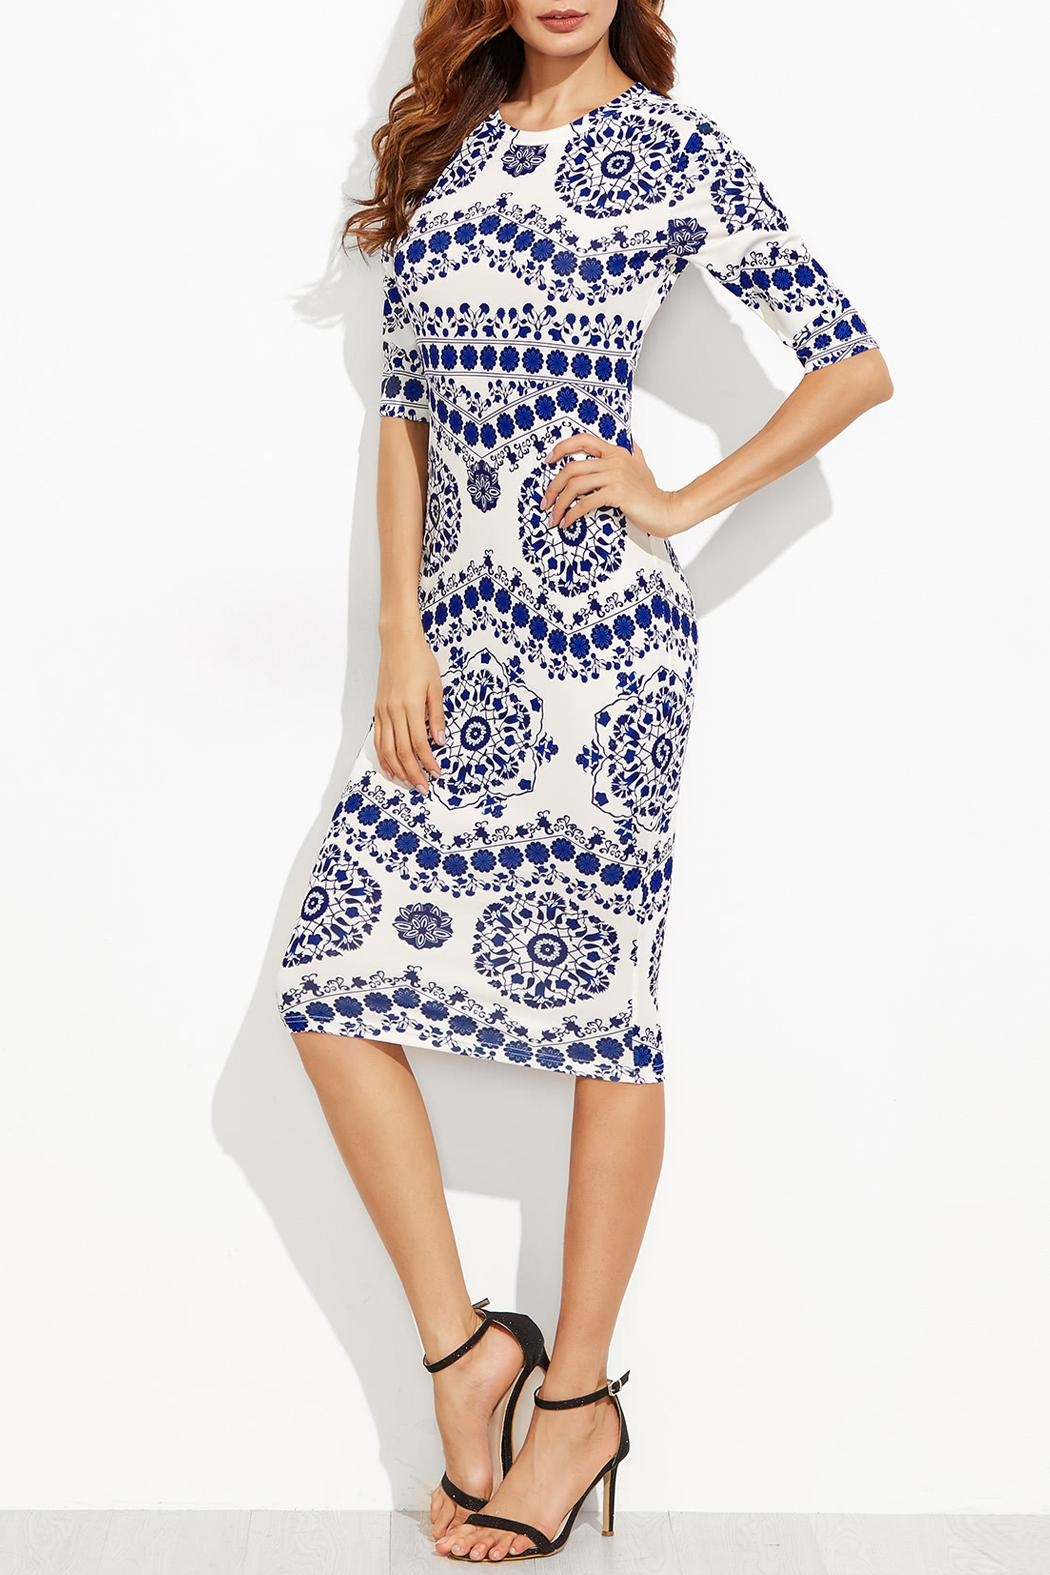 House of Atelier Porcelain Print Dress - Side Cropped Image